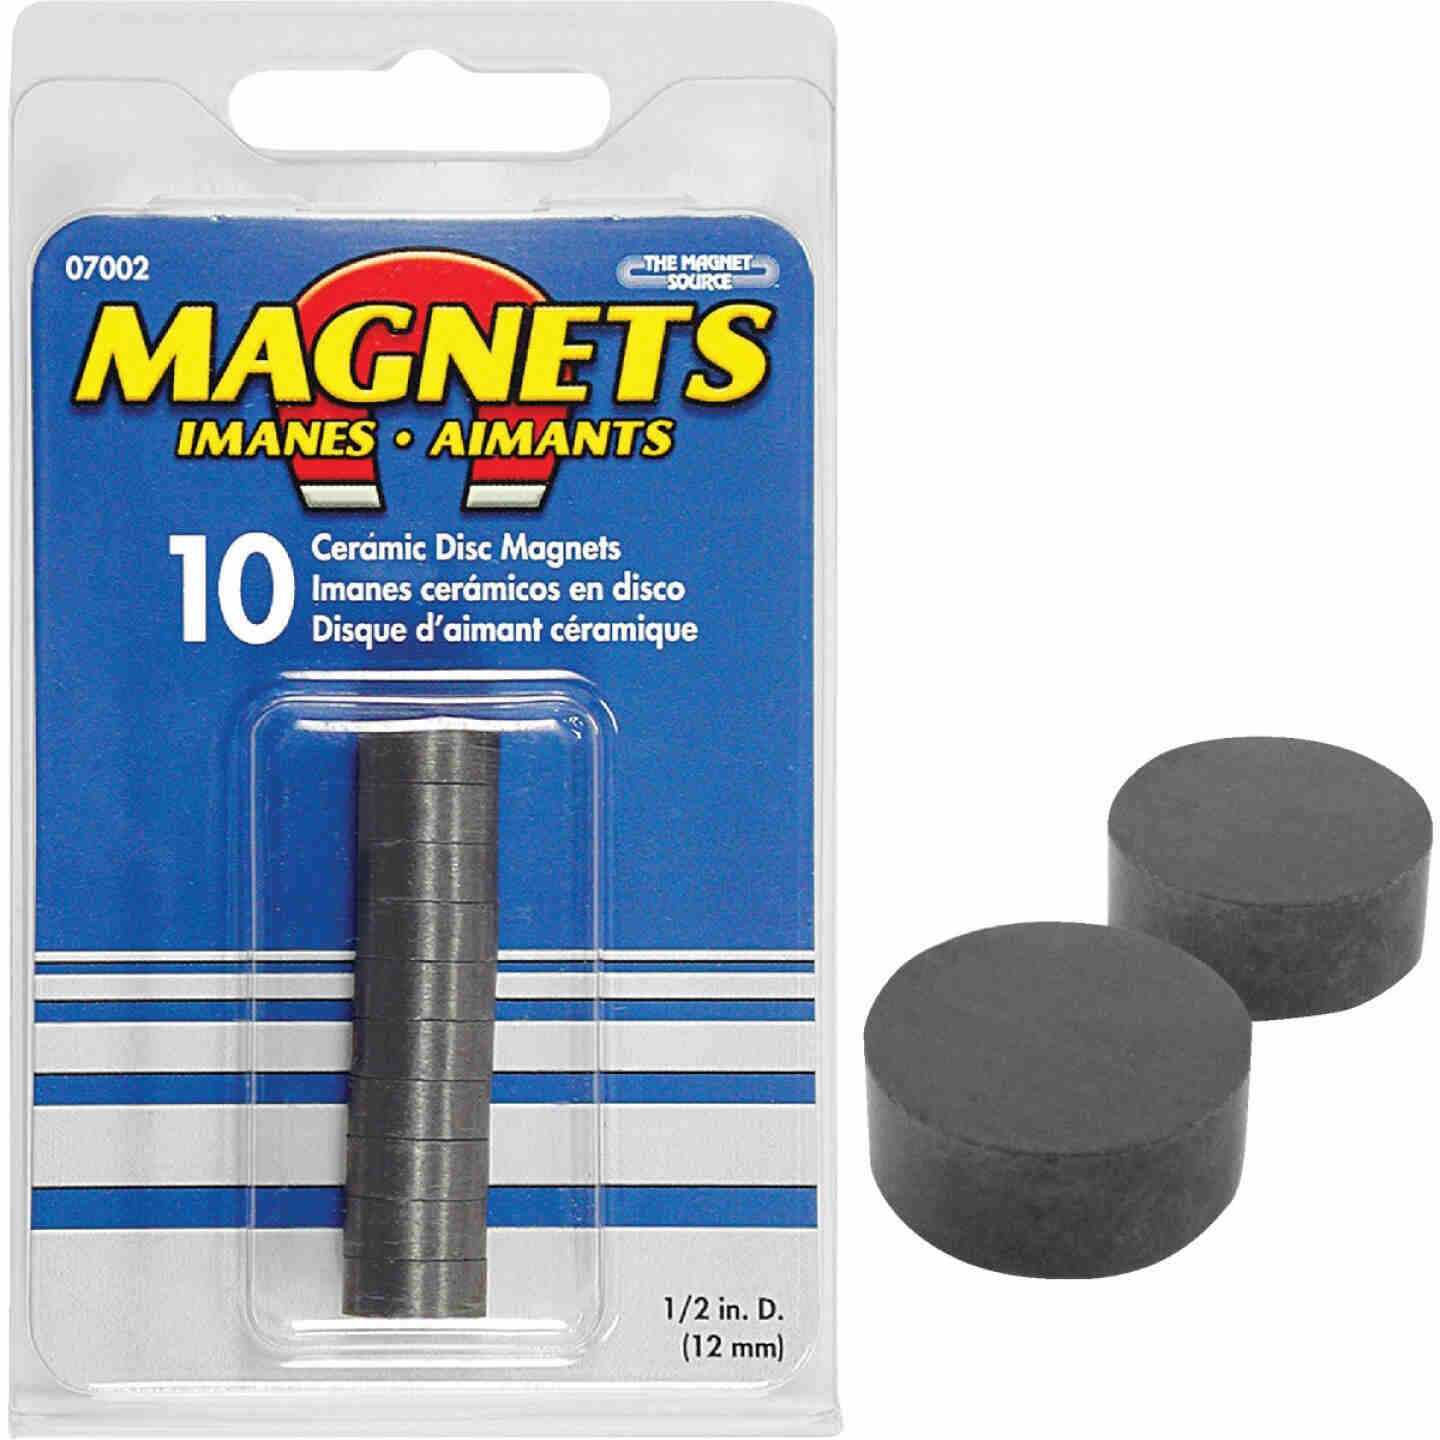 Master Magnetics 1/2 in. Multi-Pole Ceramic Magnetic Disc (10-Pack) Image 1